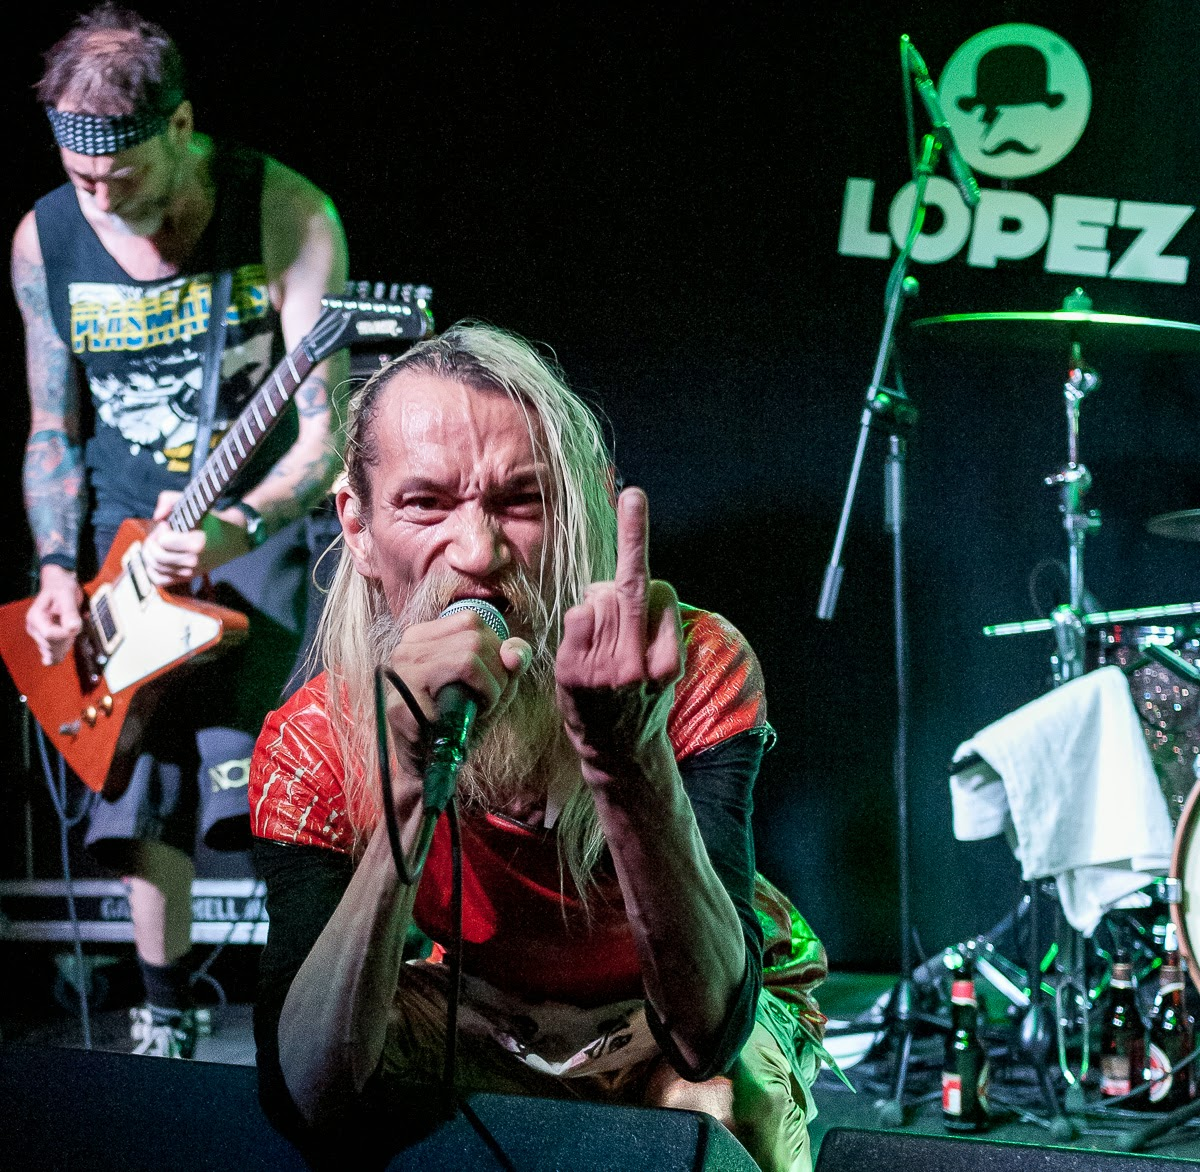 SNFU (Society No Fucking Use) Zaragoza Sala Lopez